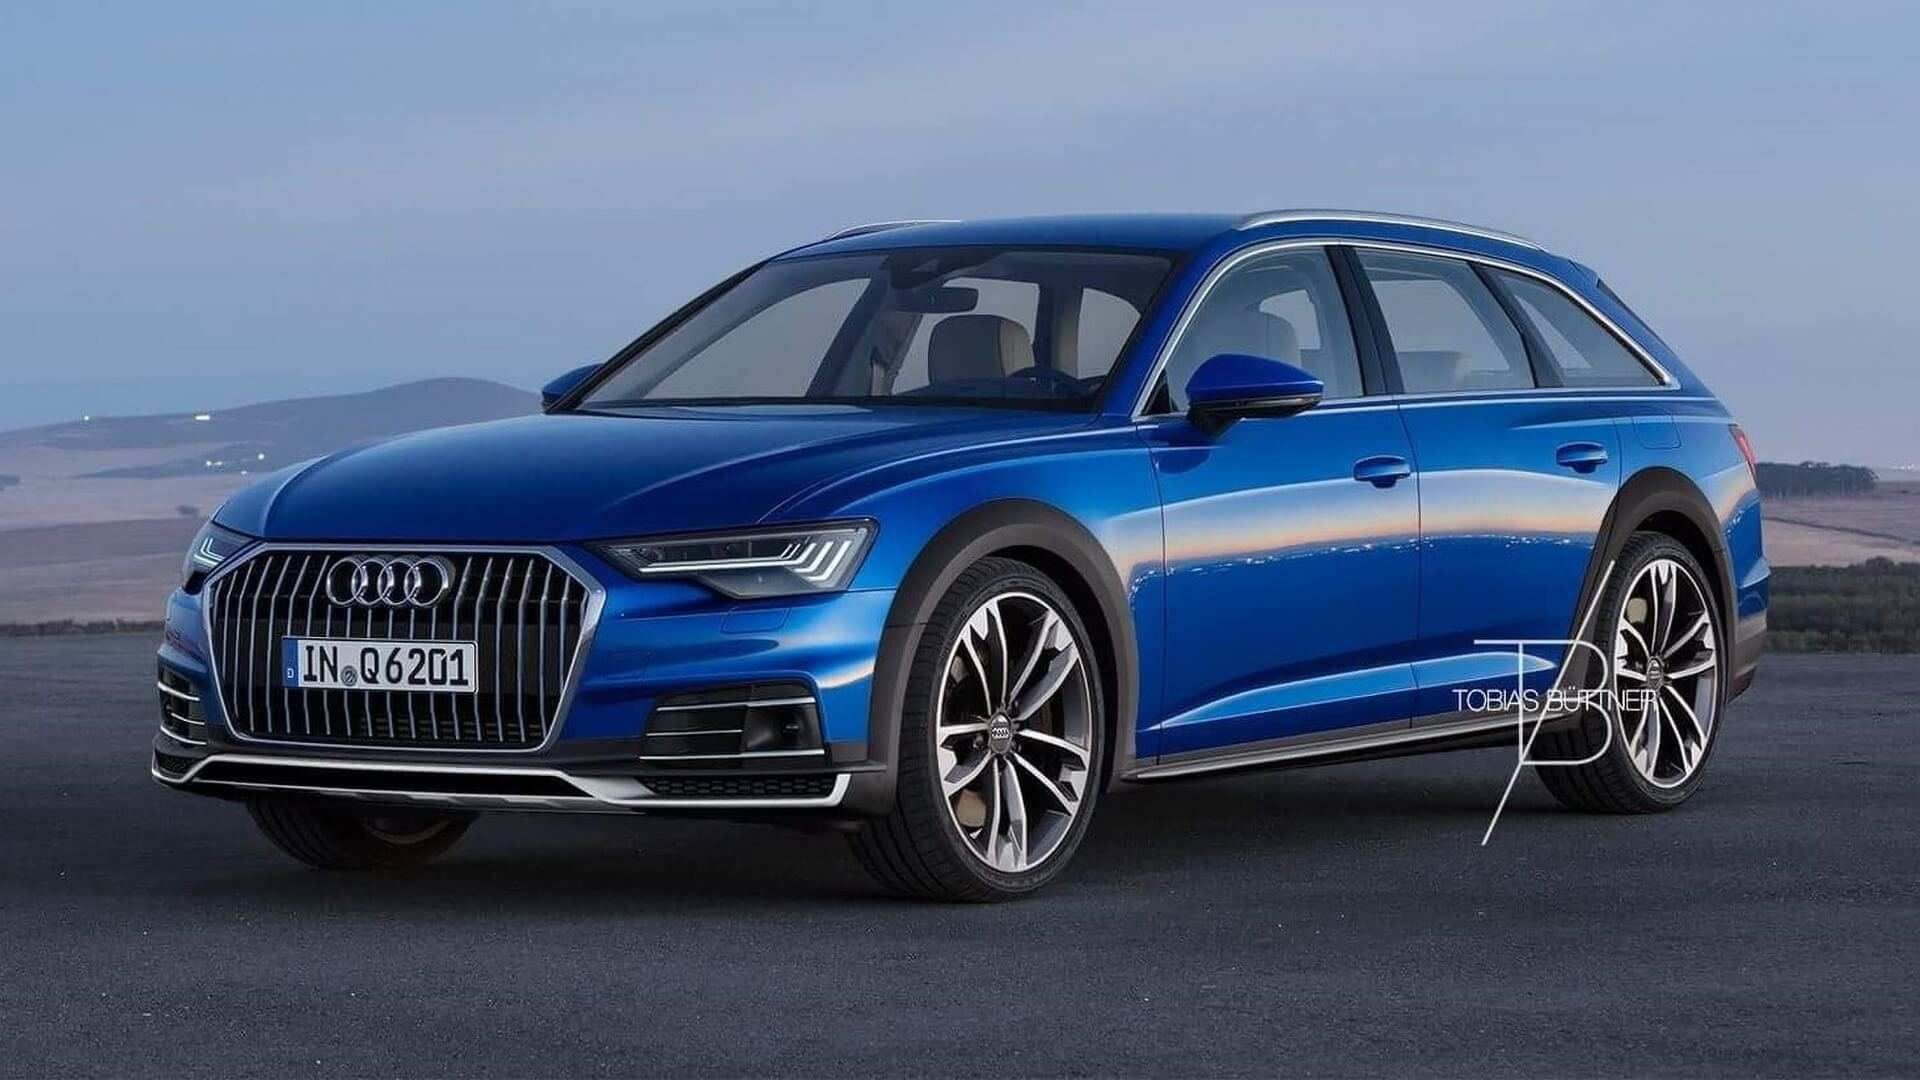 72 The 2020 Audi A6 Allroad Usa Spy Shoot